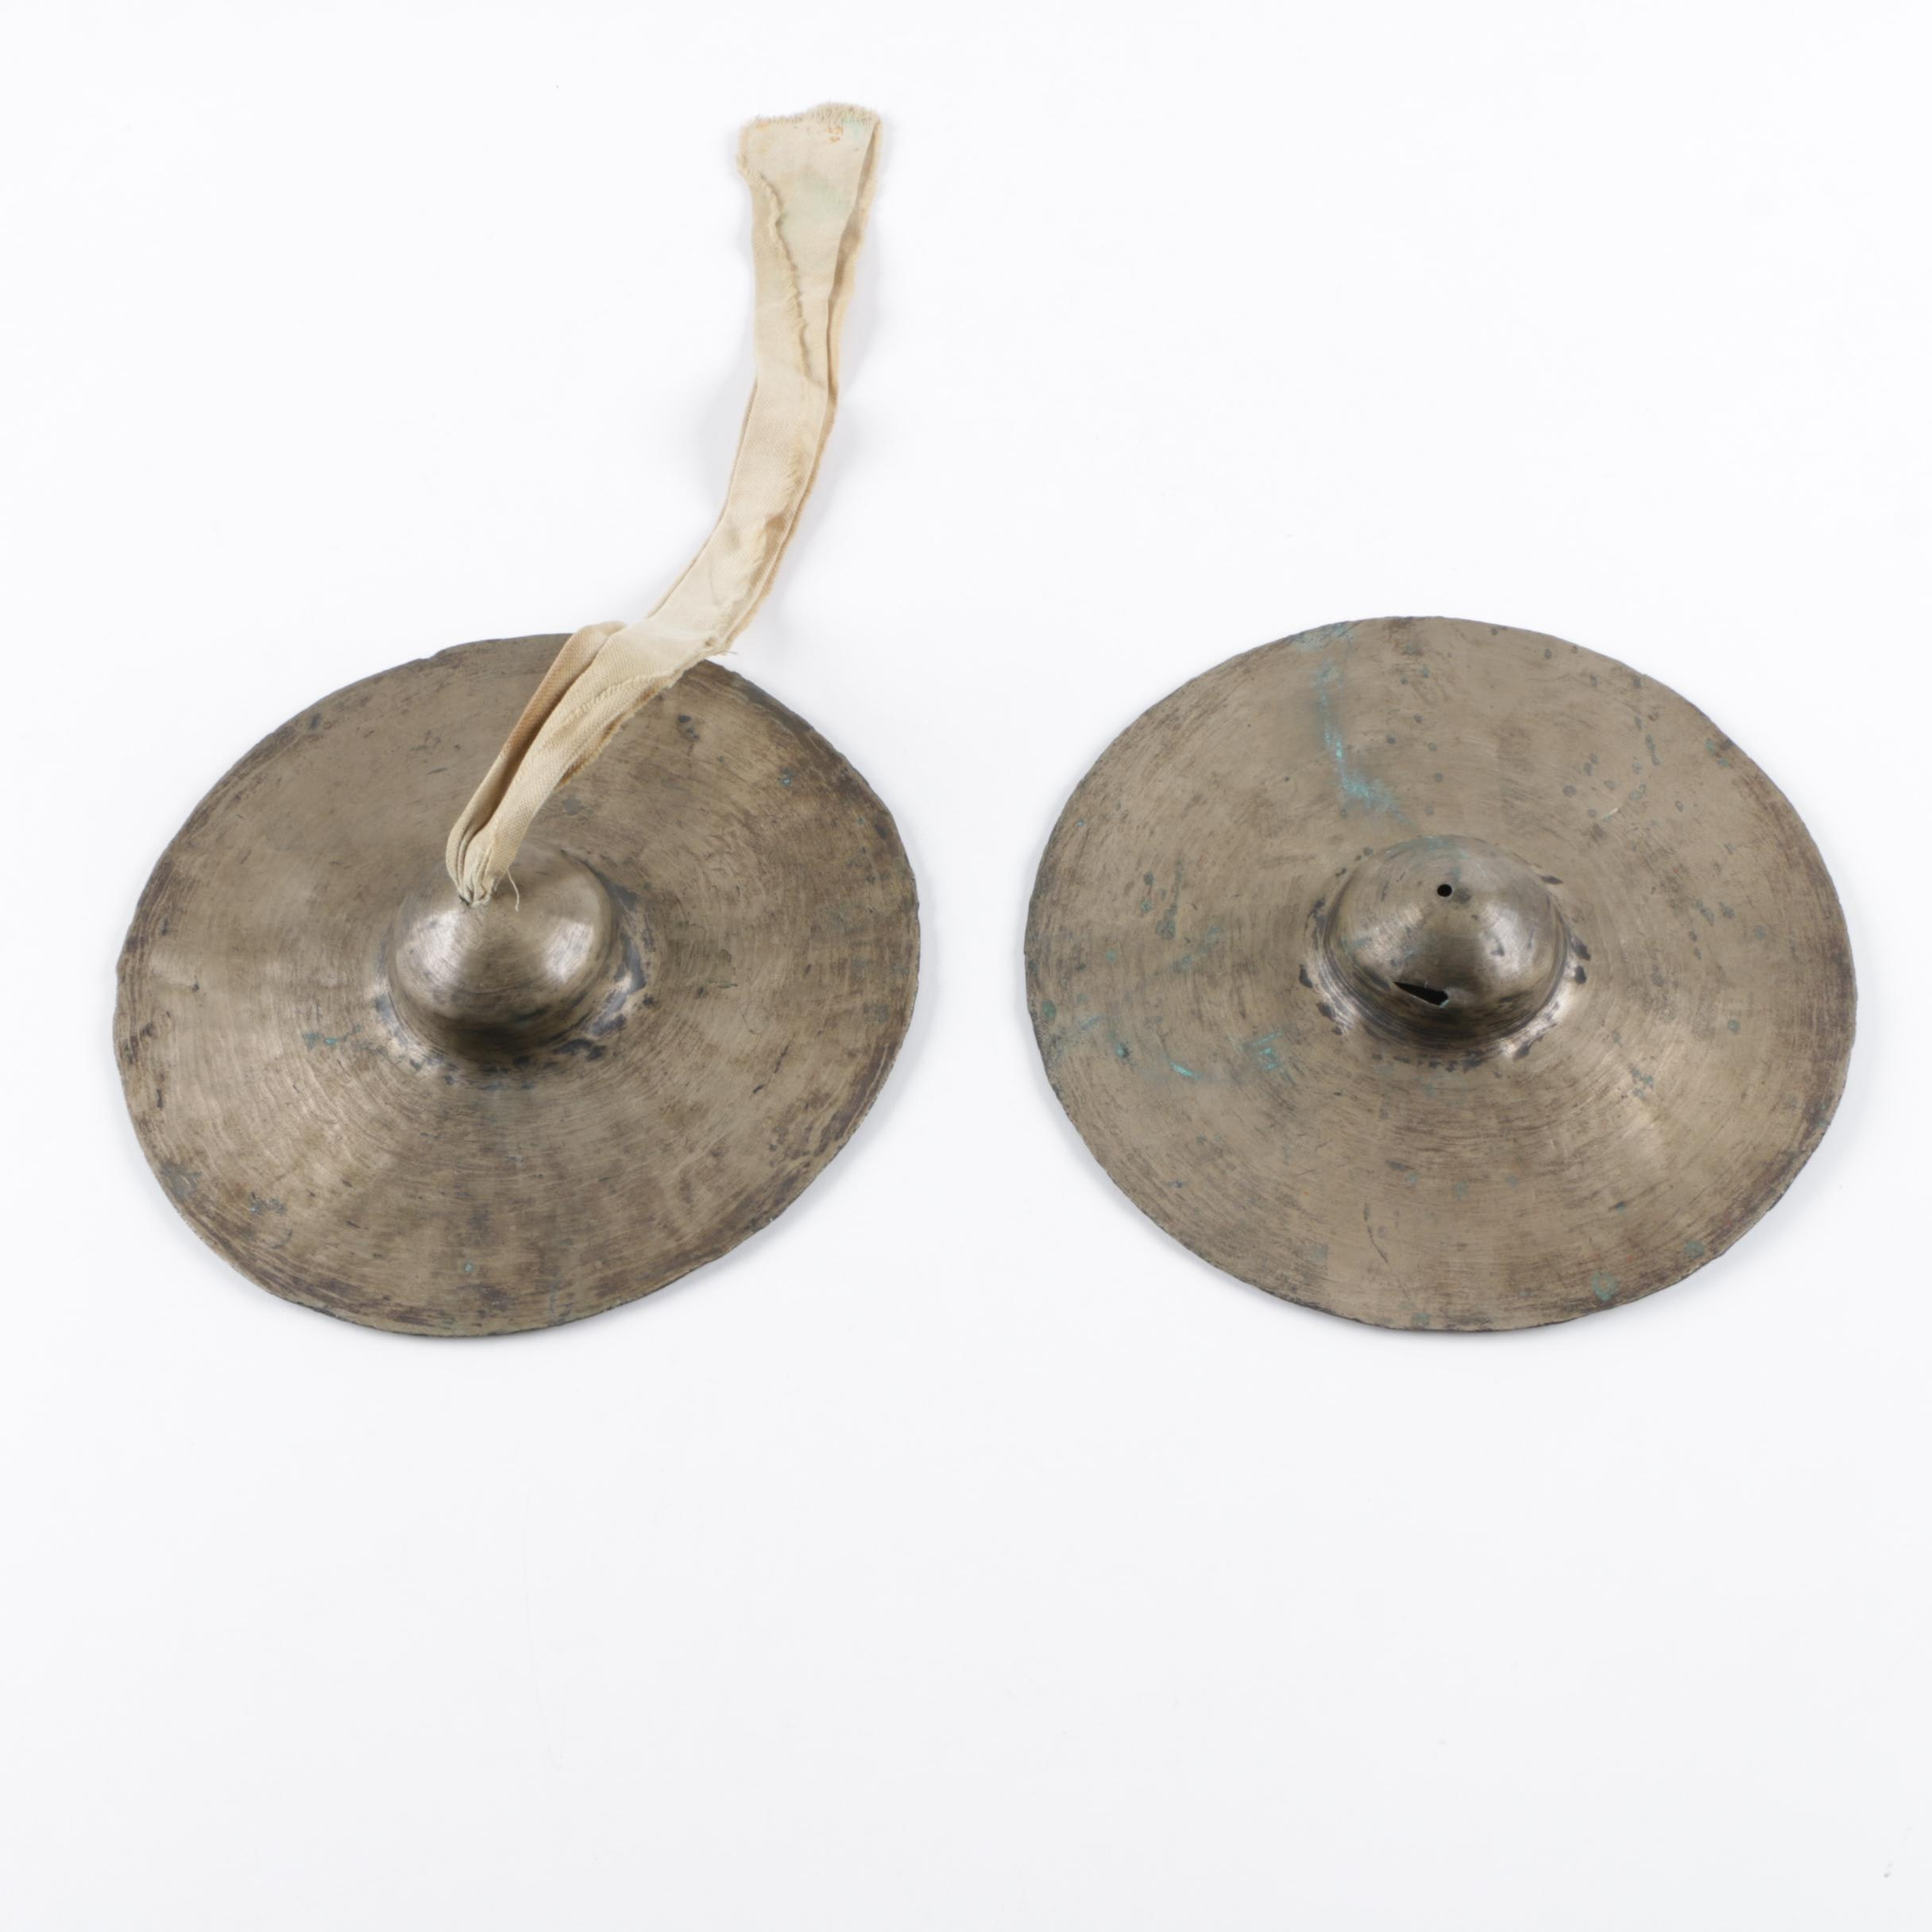 Vintage Chinese Clash Cymbals